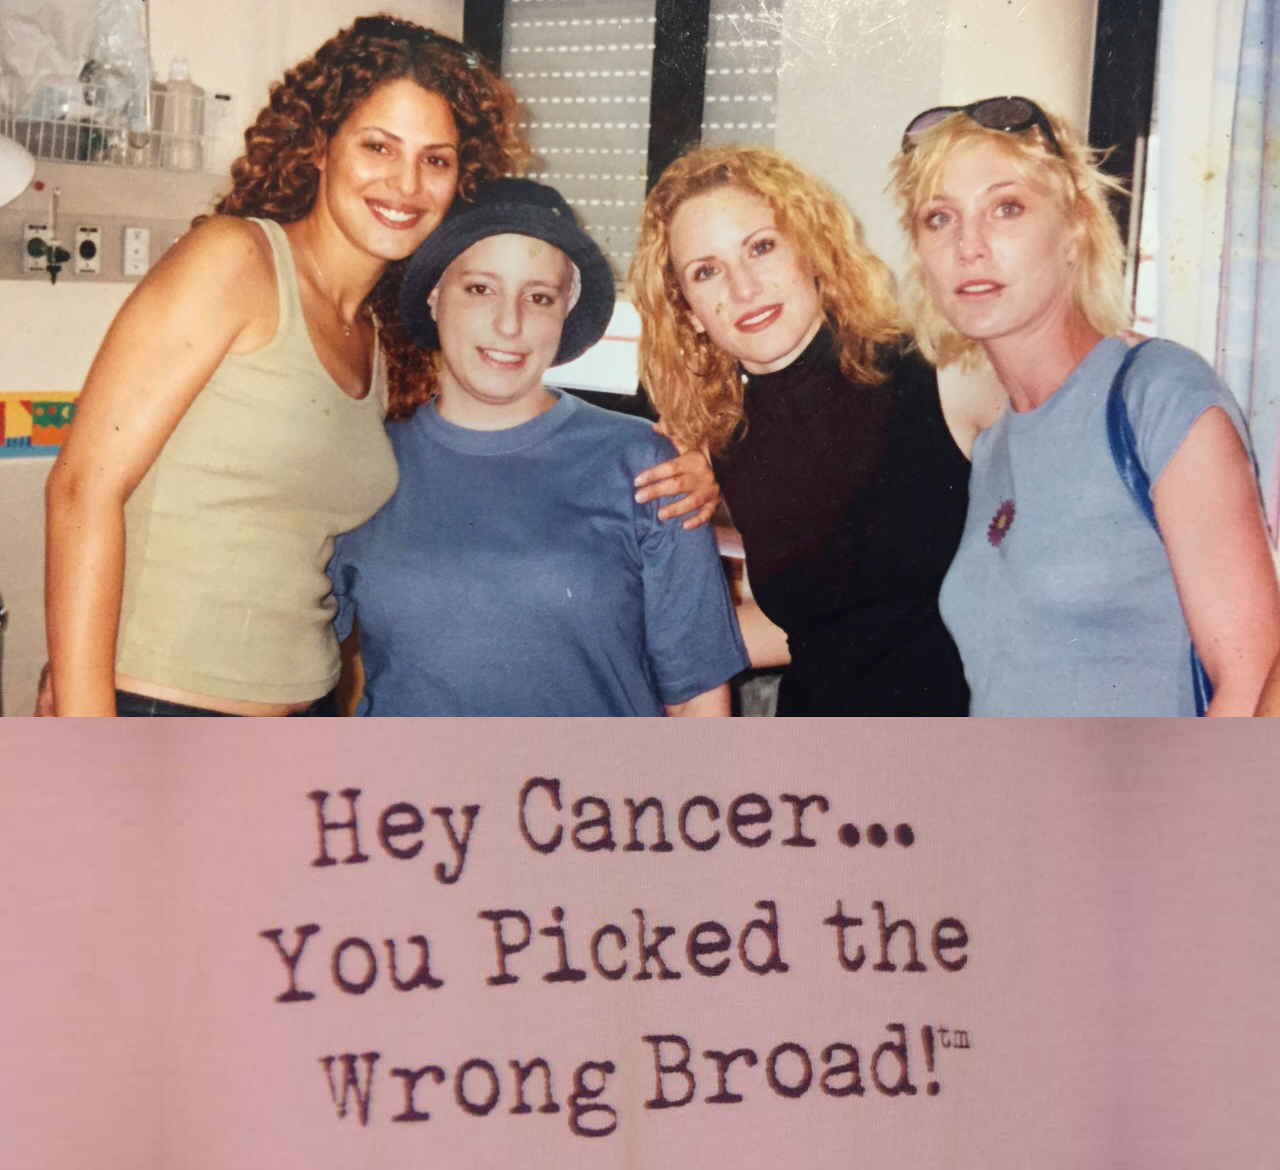 Miri Torres with cancer surrounded by her friends